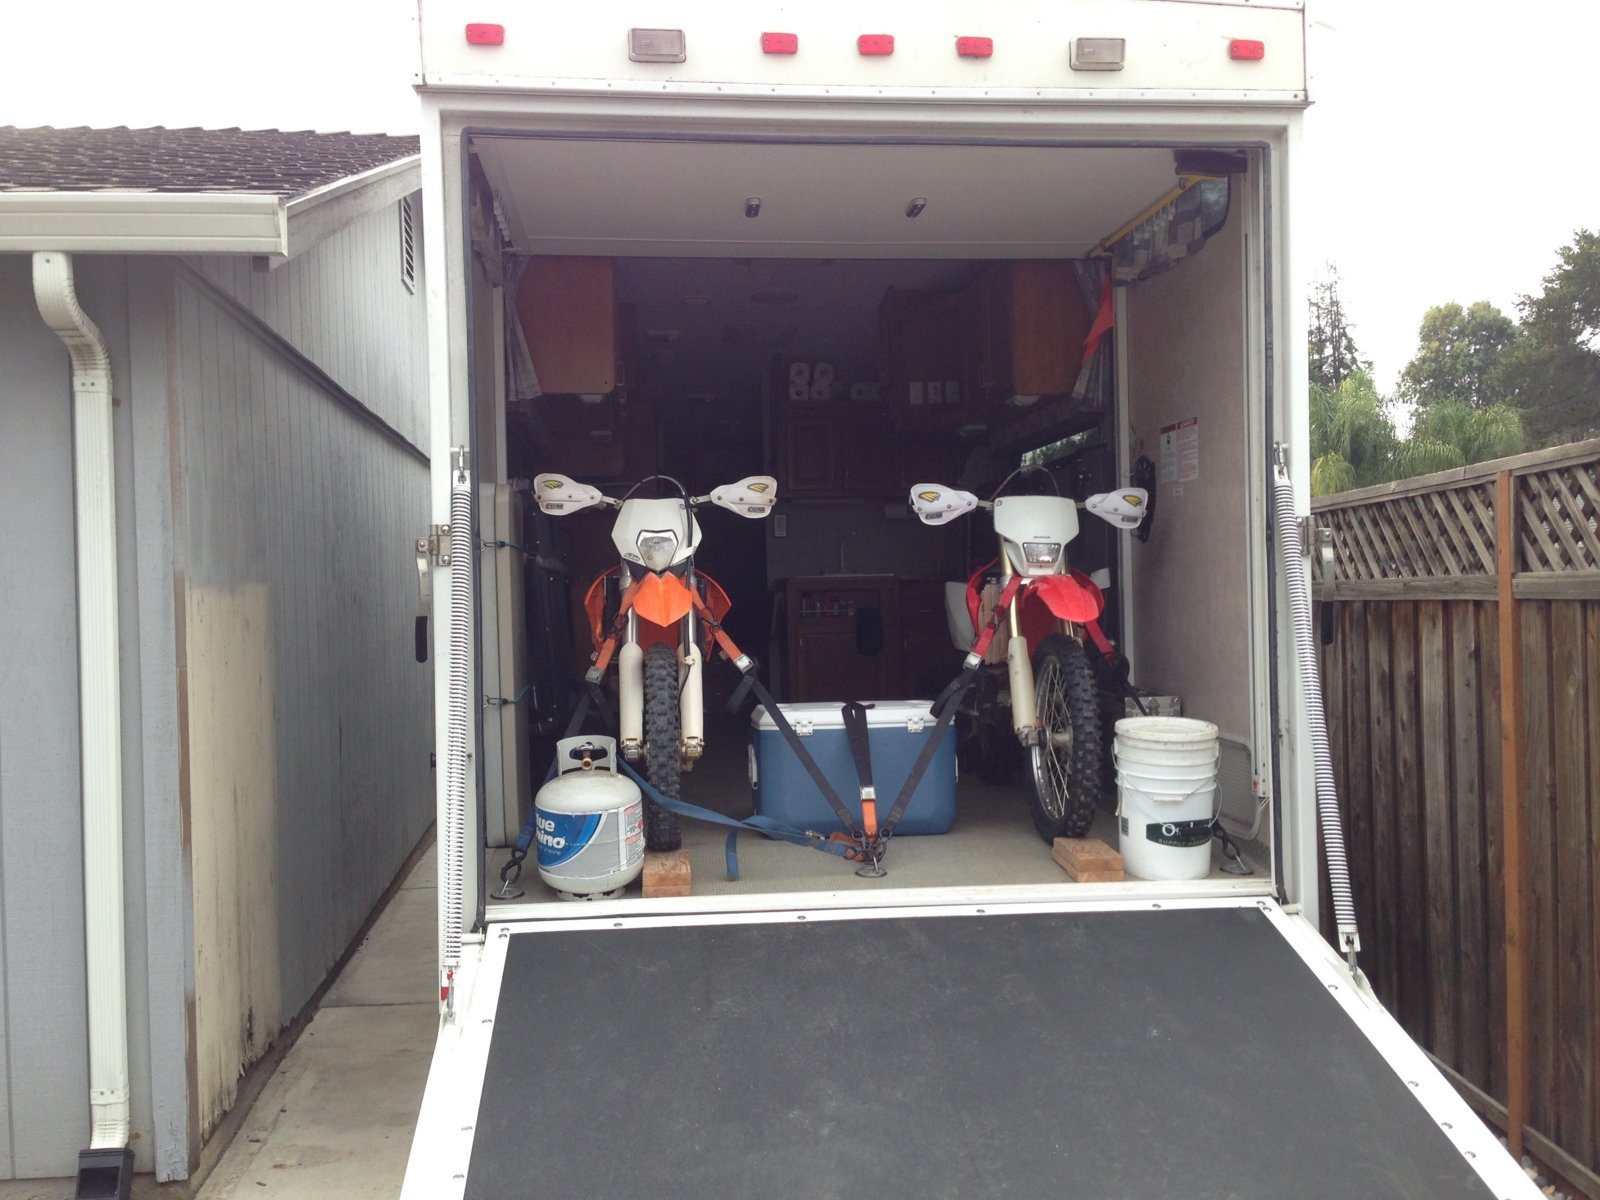 Secure Dirt Bikes In A Toy Hauler South Bay Riders